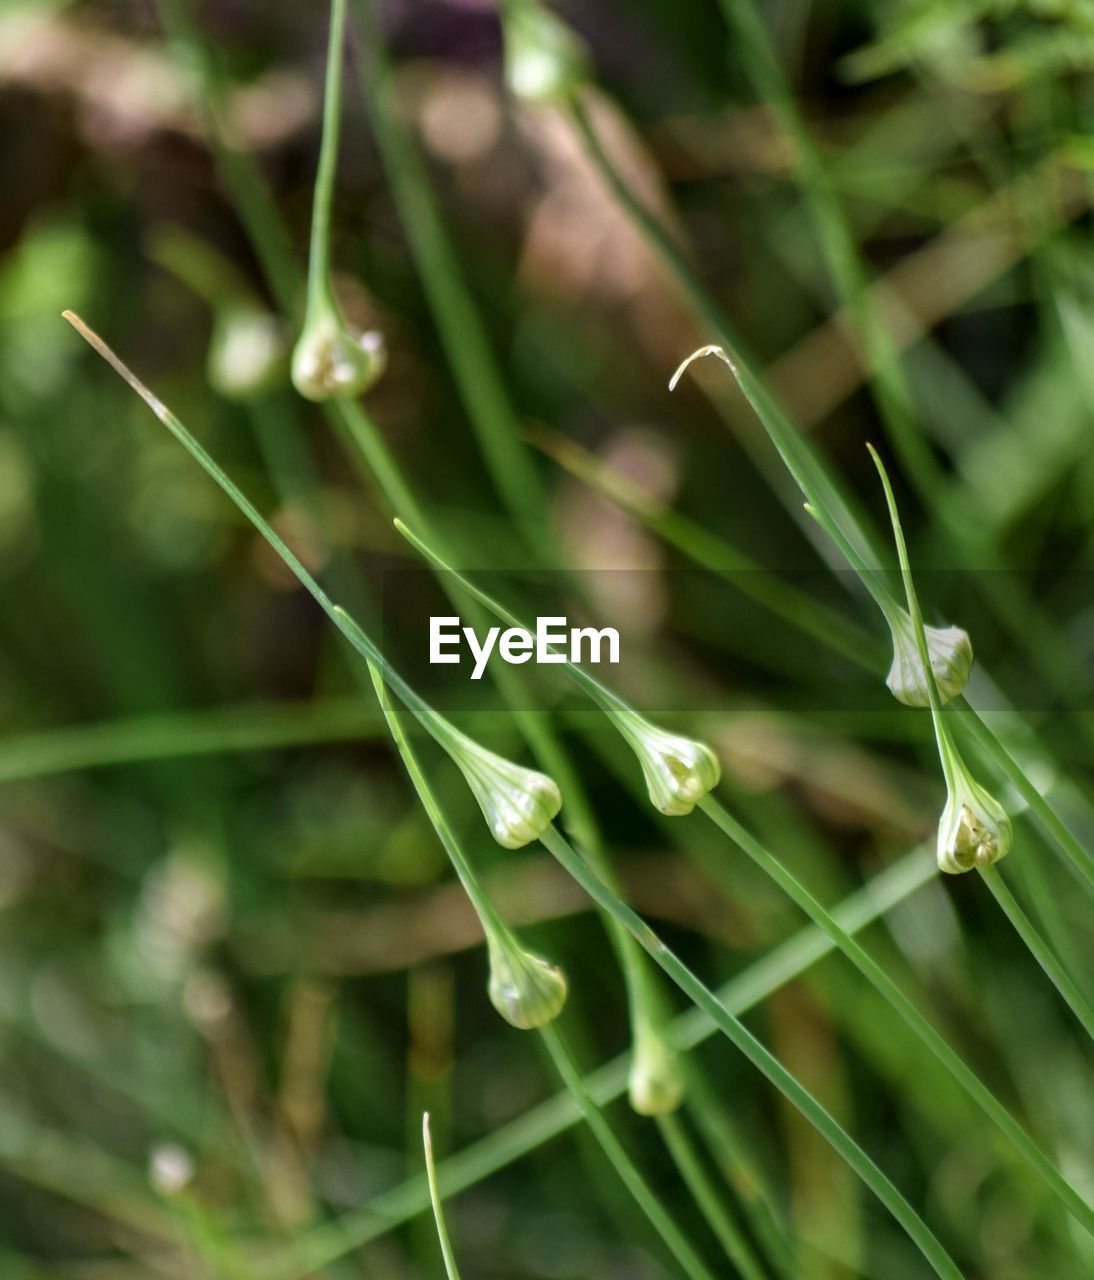 growth, green color, plant, close-up, beauty in nature, selective focus, freshness, fragility, no people, nature, vulnerability, day, focus on foreground, wet, plant part, outdoors, leaf, tranquility, plant stem, blade of grass, purity, dew, raindrop